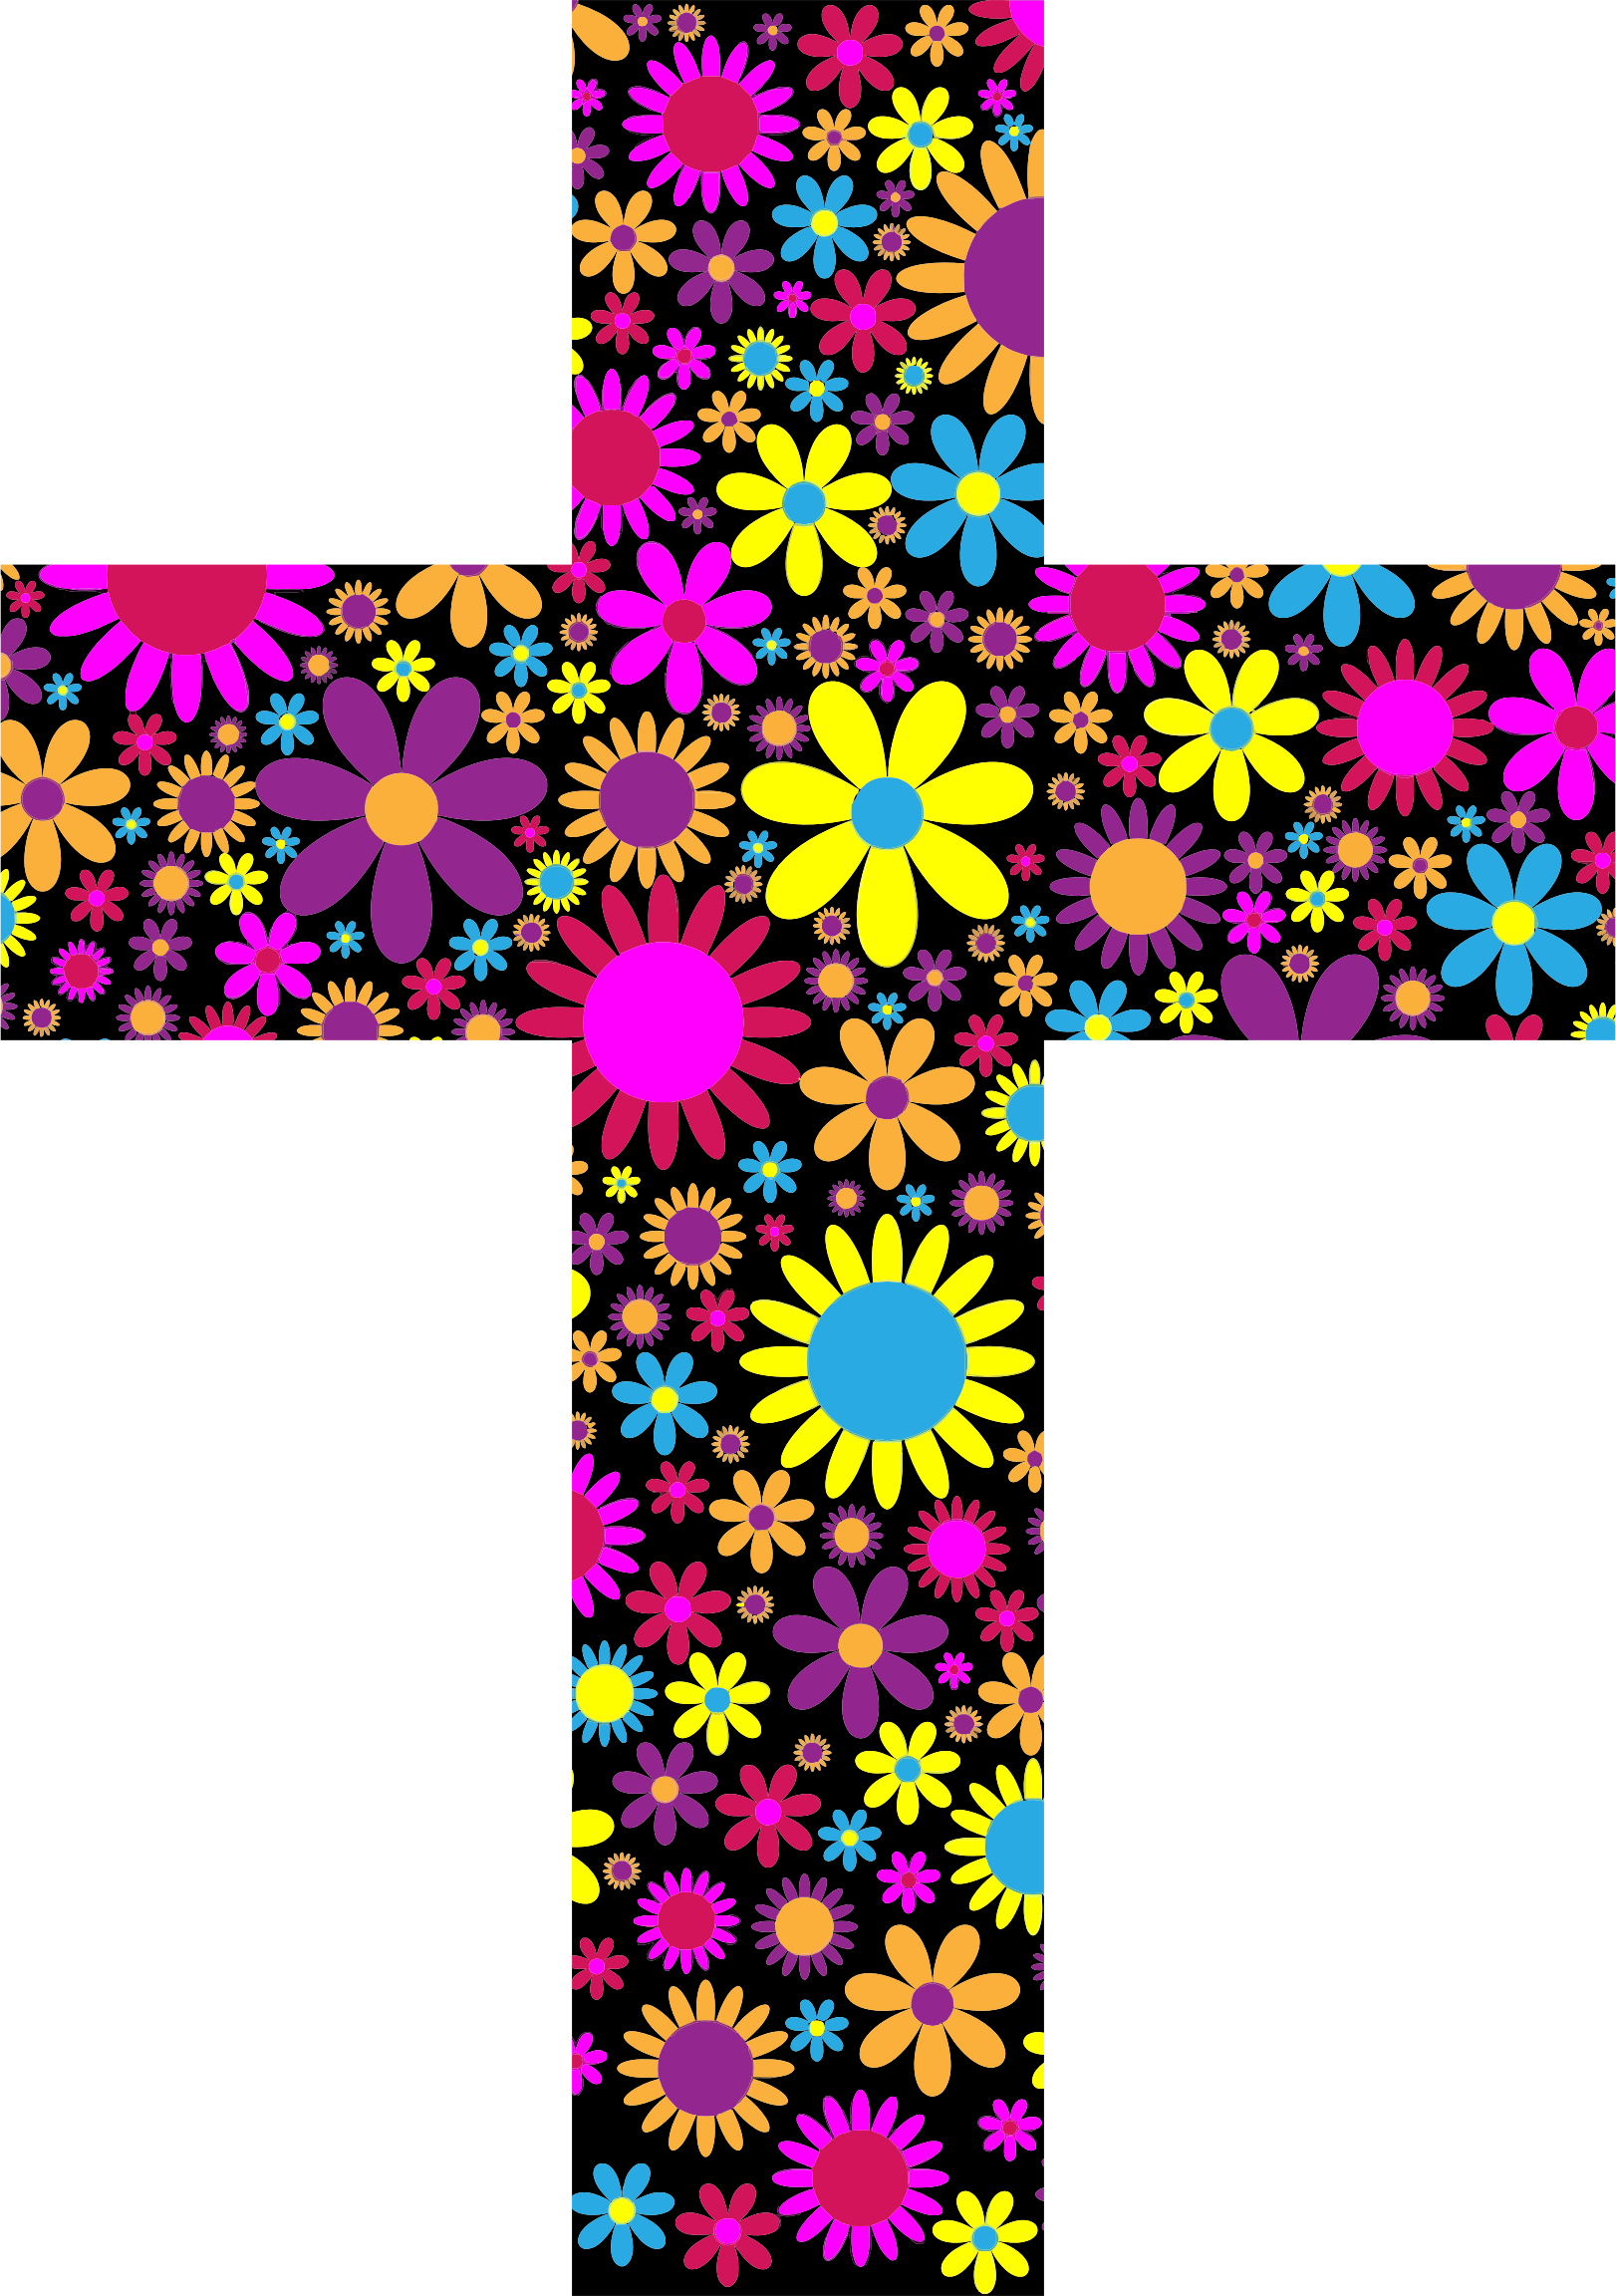 Floral Cross 2 by GDJ